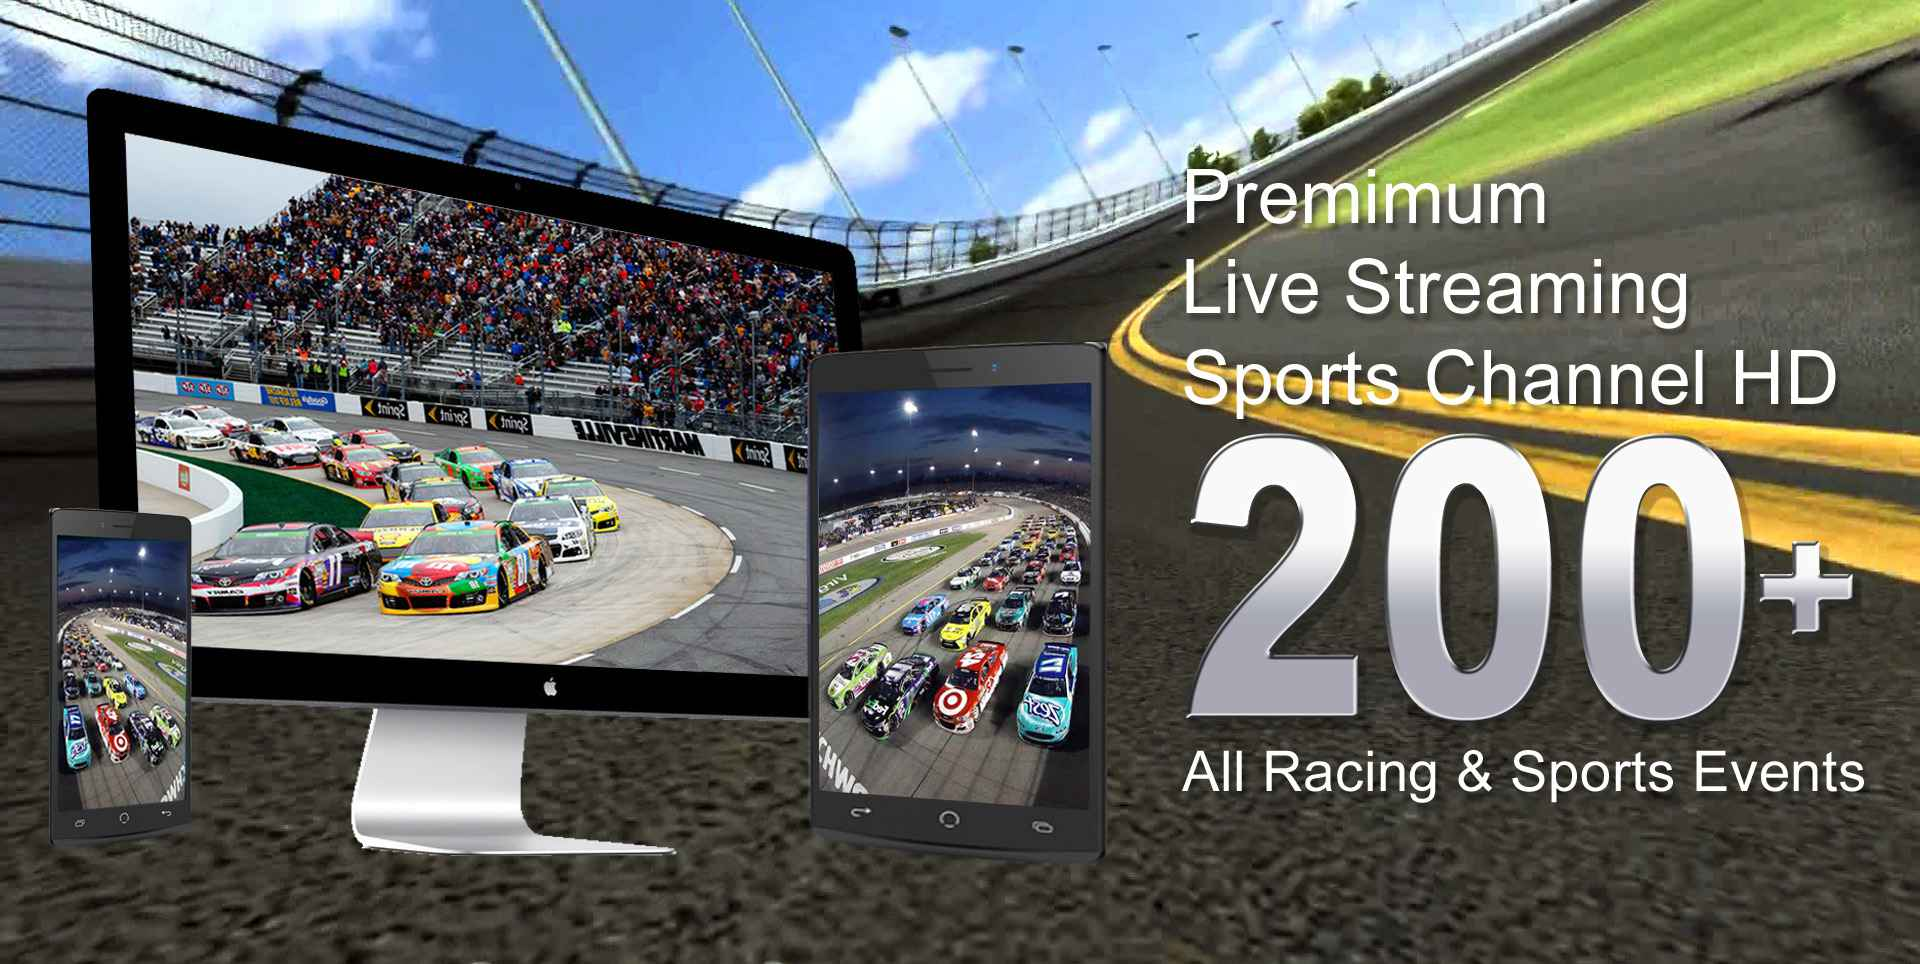 nascar-2015-xfinity-series-race-at-bristol-live